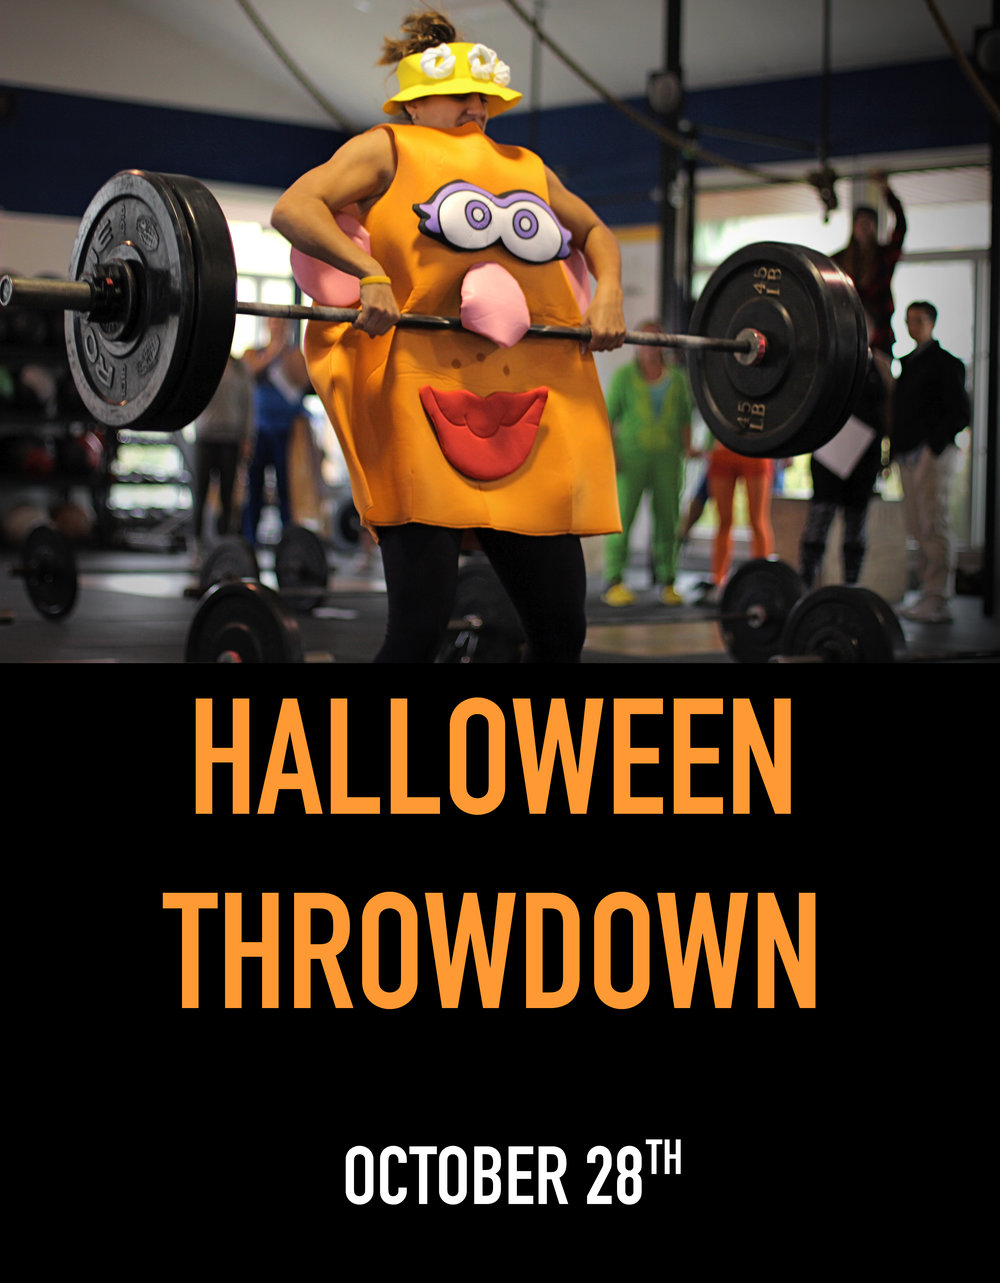 Save the Date! Our very own Halloween Throwdown!